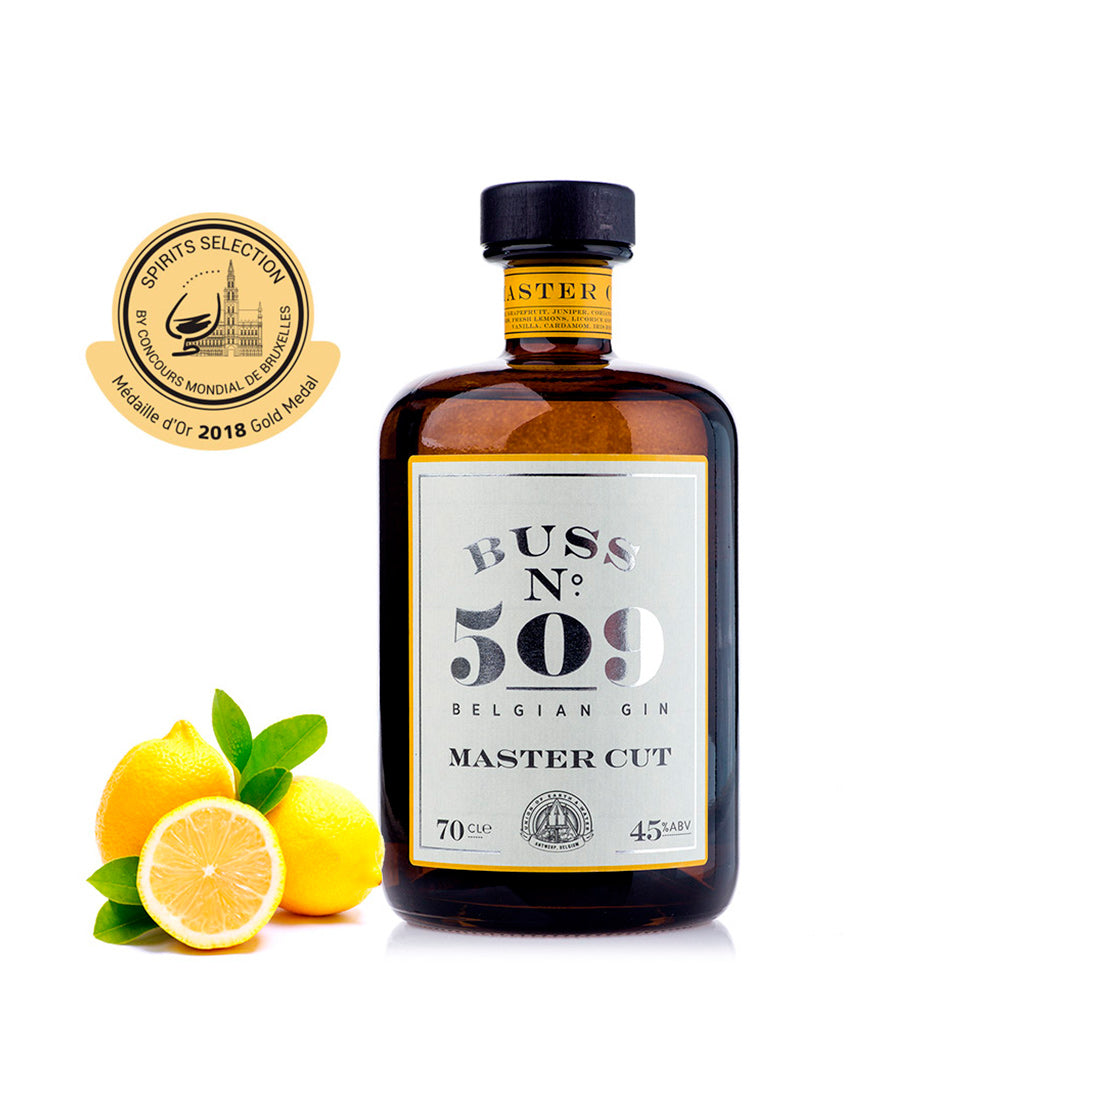 Buss No 509 Master Cut Gin, 700ml